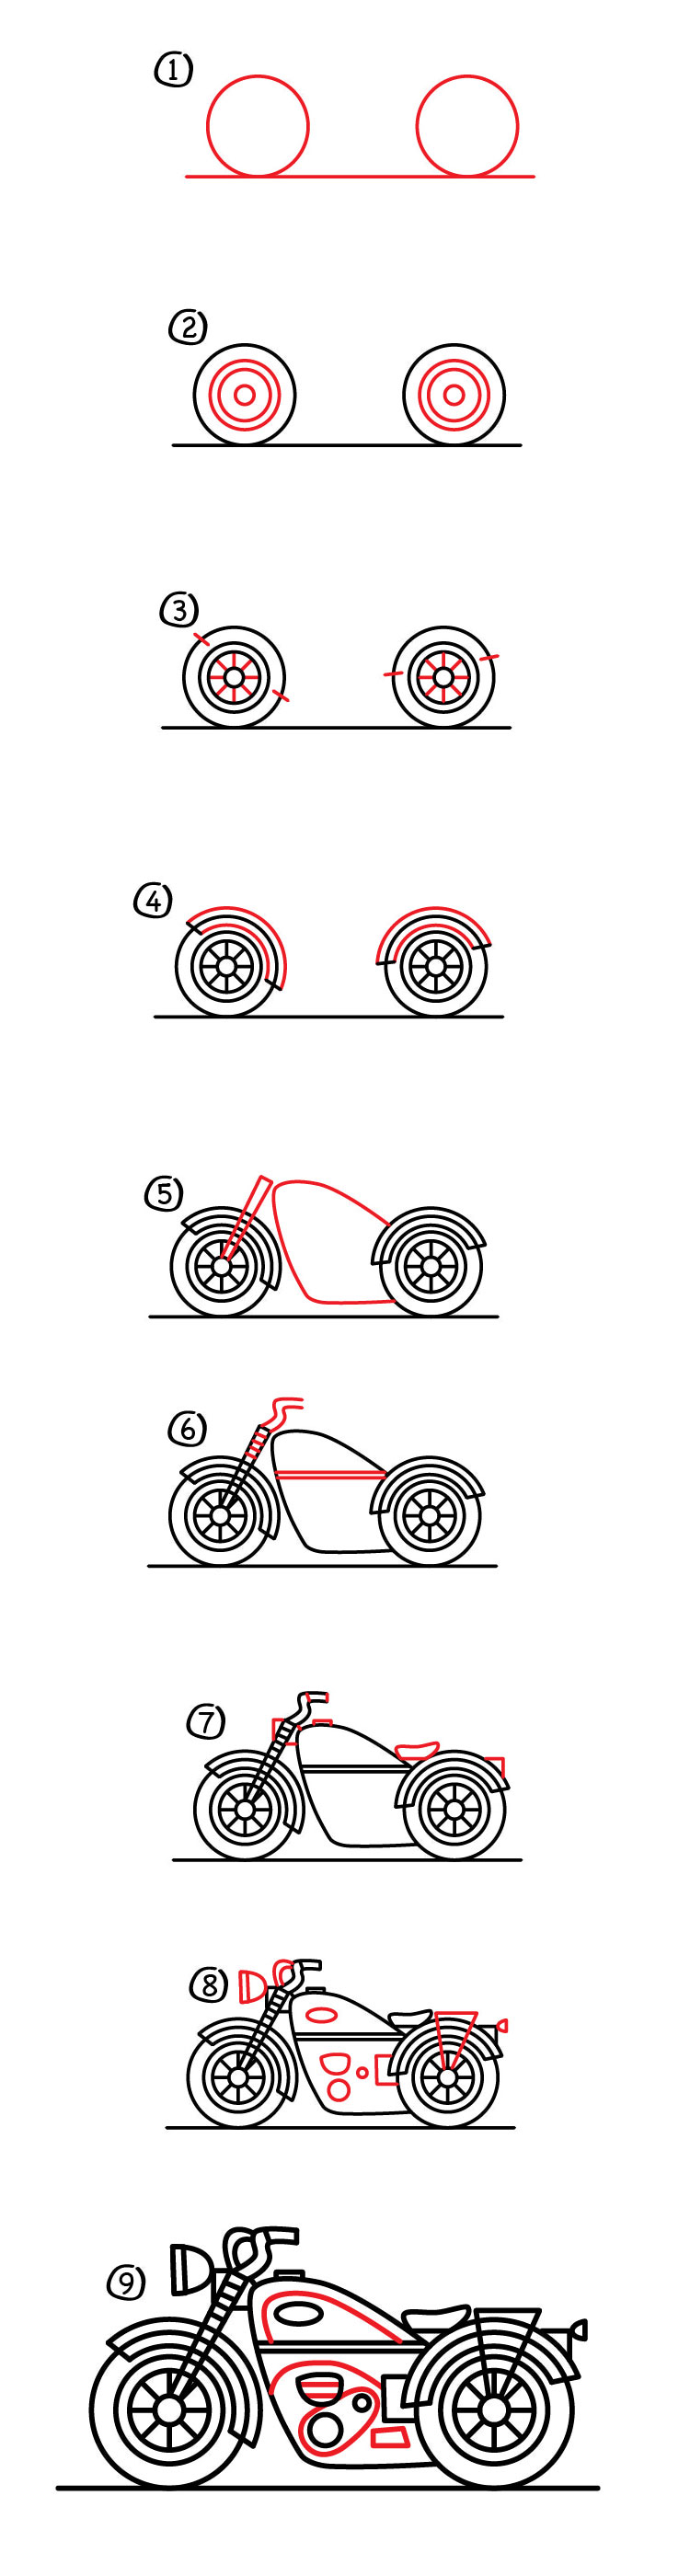 How to draw a motorcycle: a step-by-step instruction